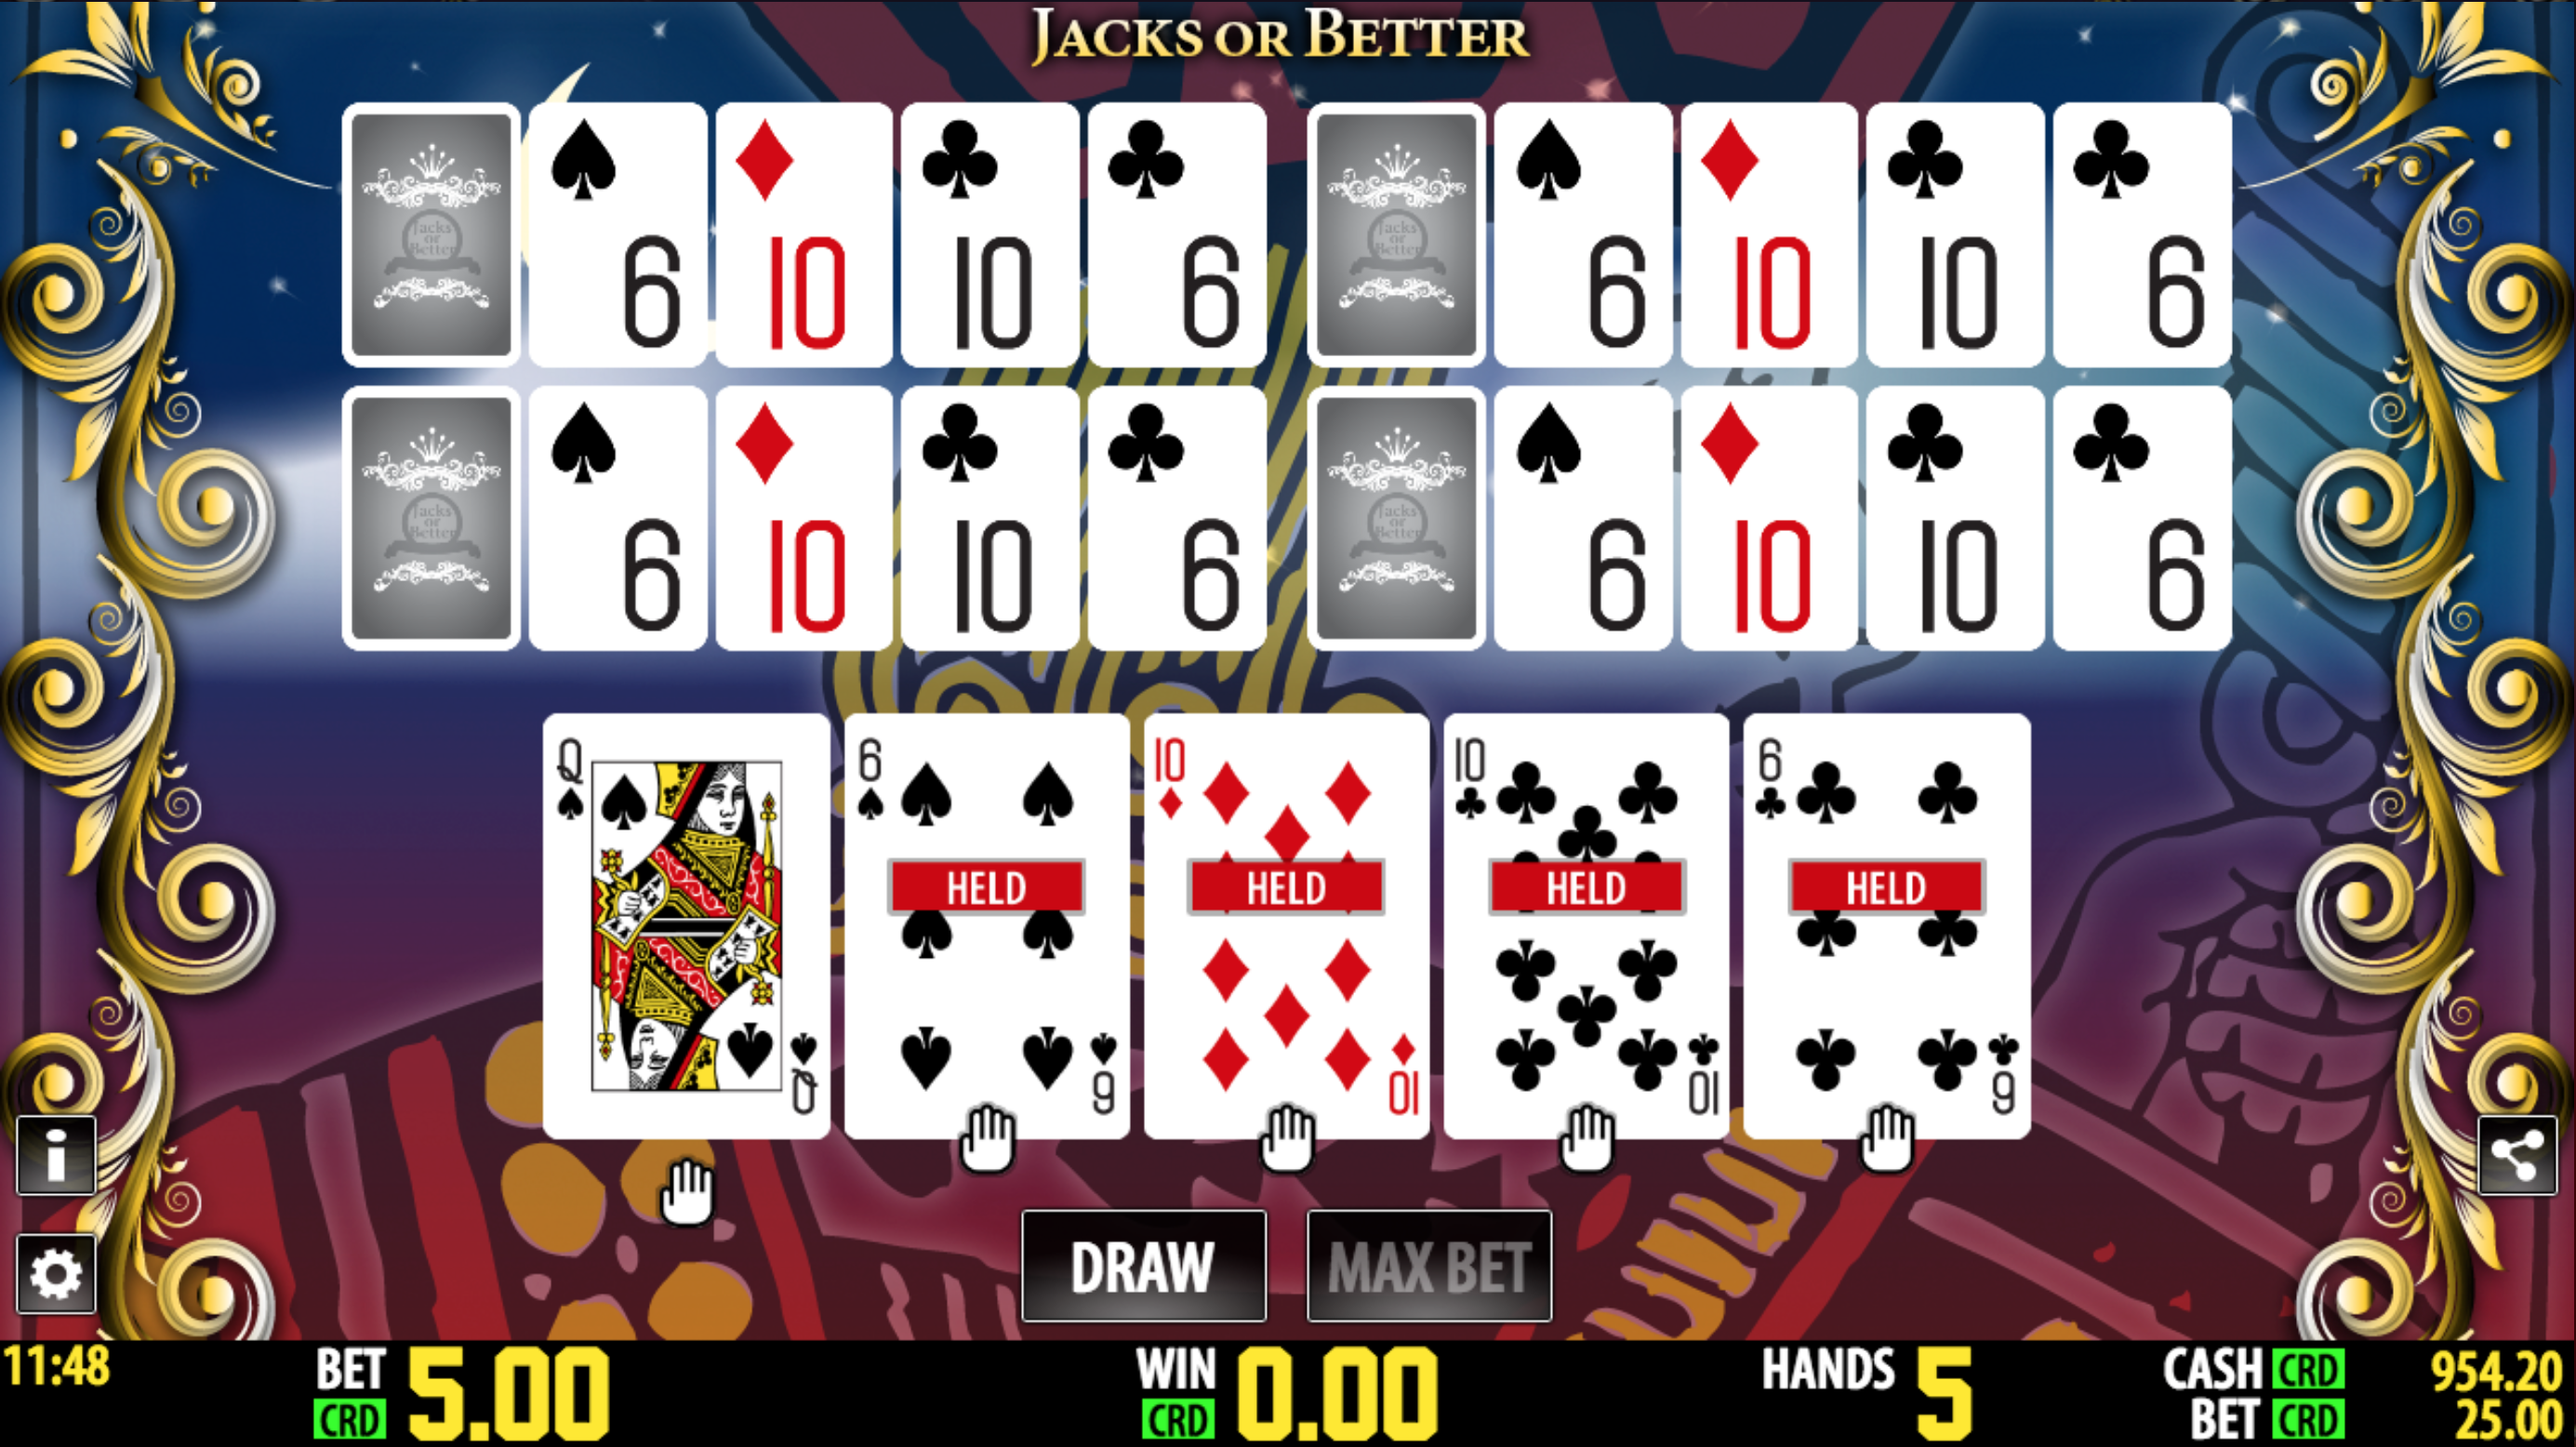 Jacks or better_video pokerio žaidimo taisyklės